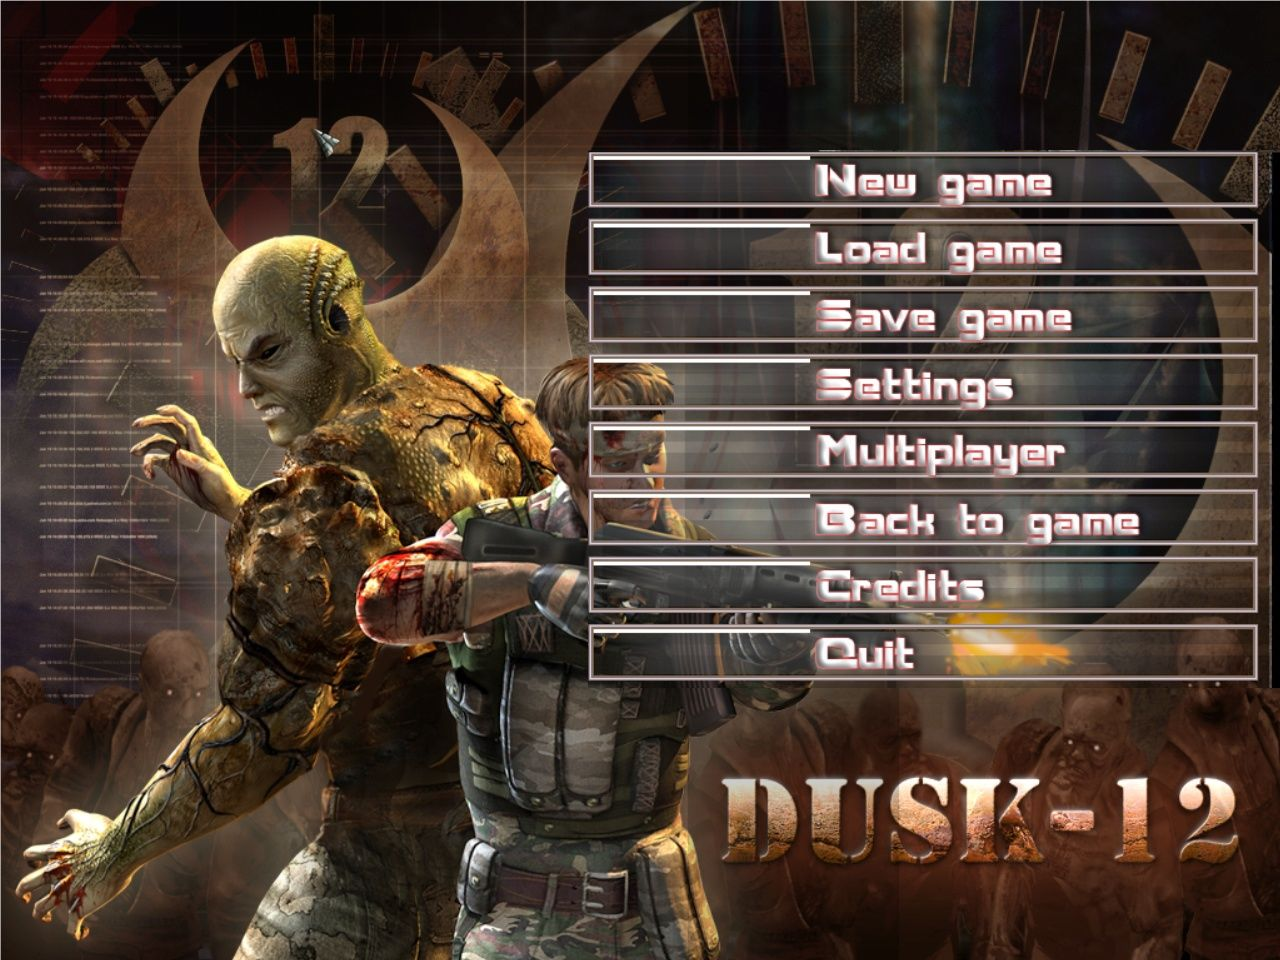 Dusk-12: Deadly Zone Windows Main menu